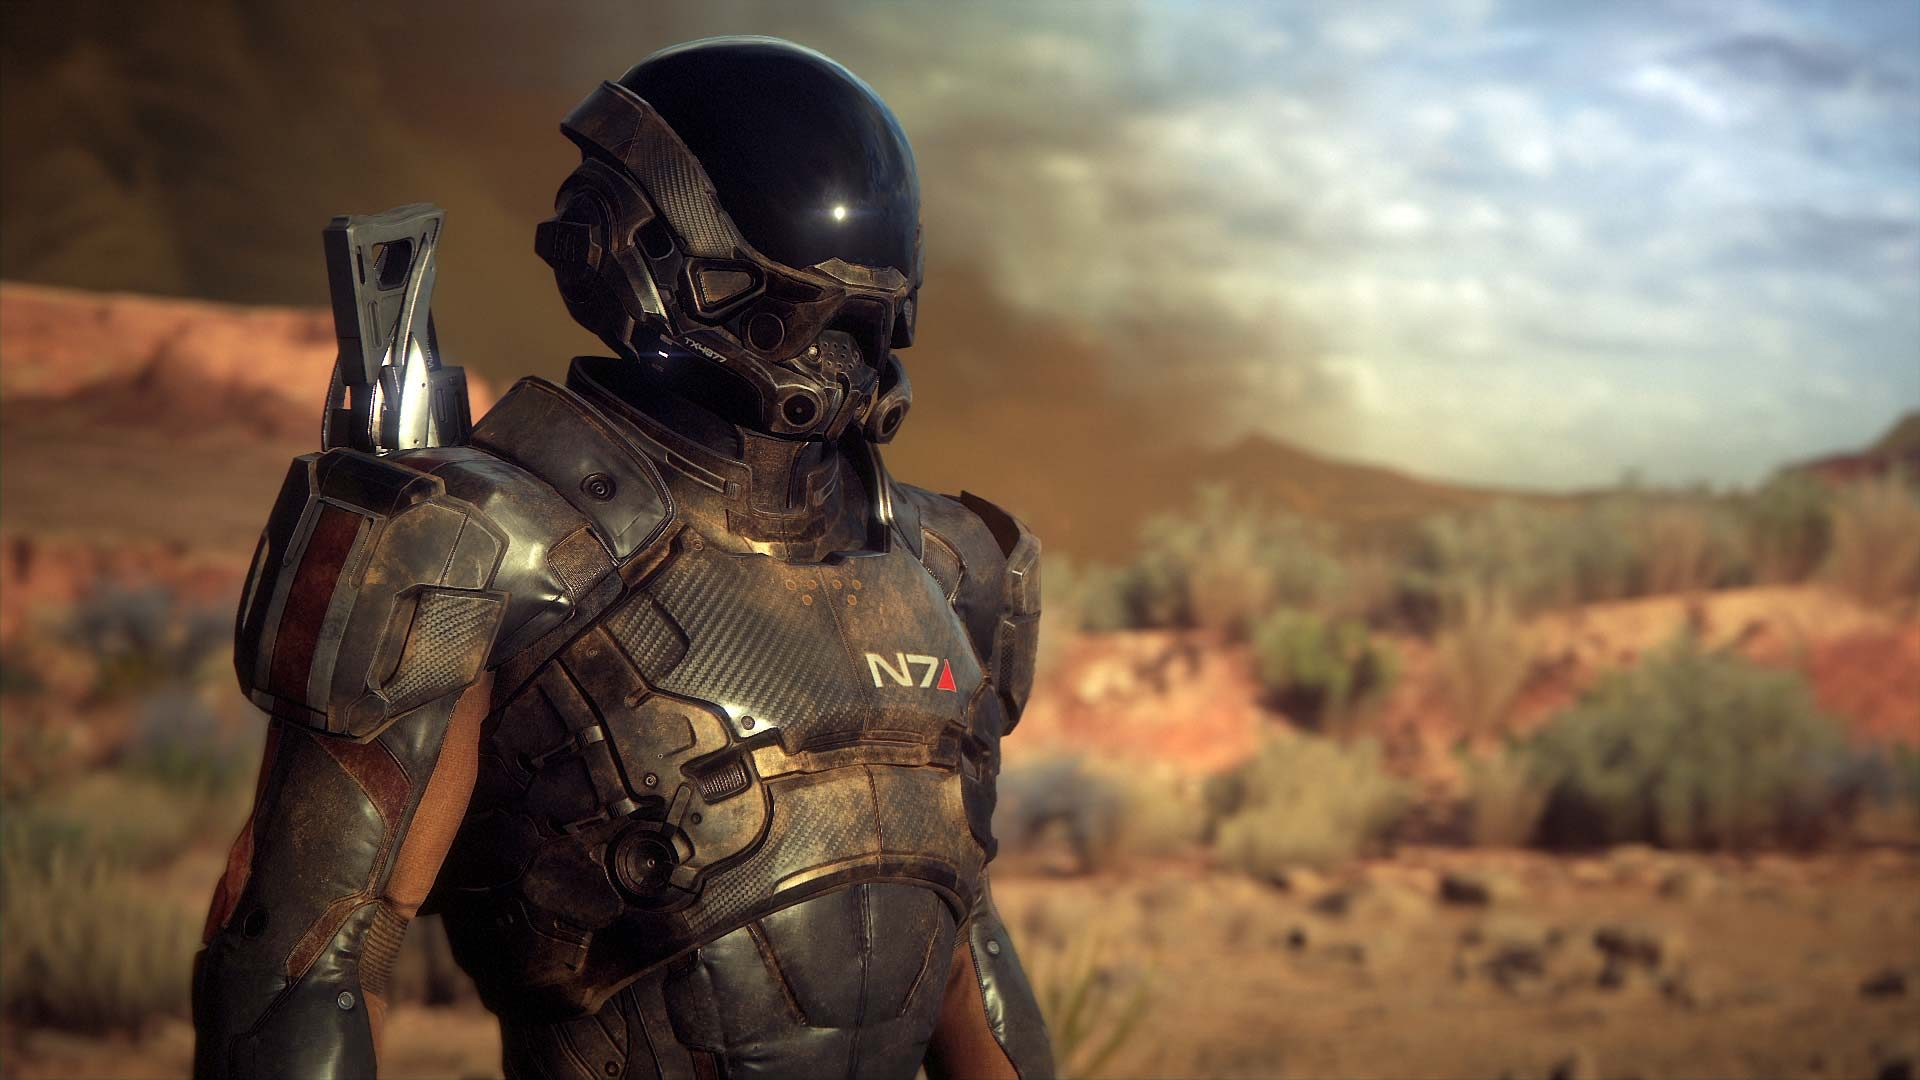 Mass Effect Andromeda Wallpaper: Mass Effect: Andromeda HD Wallpaper